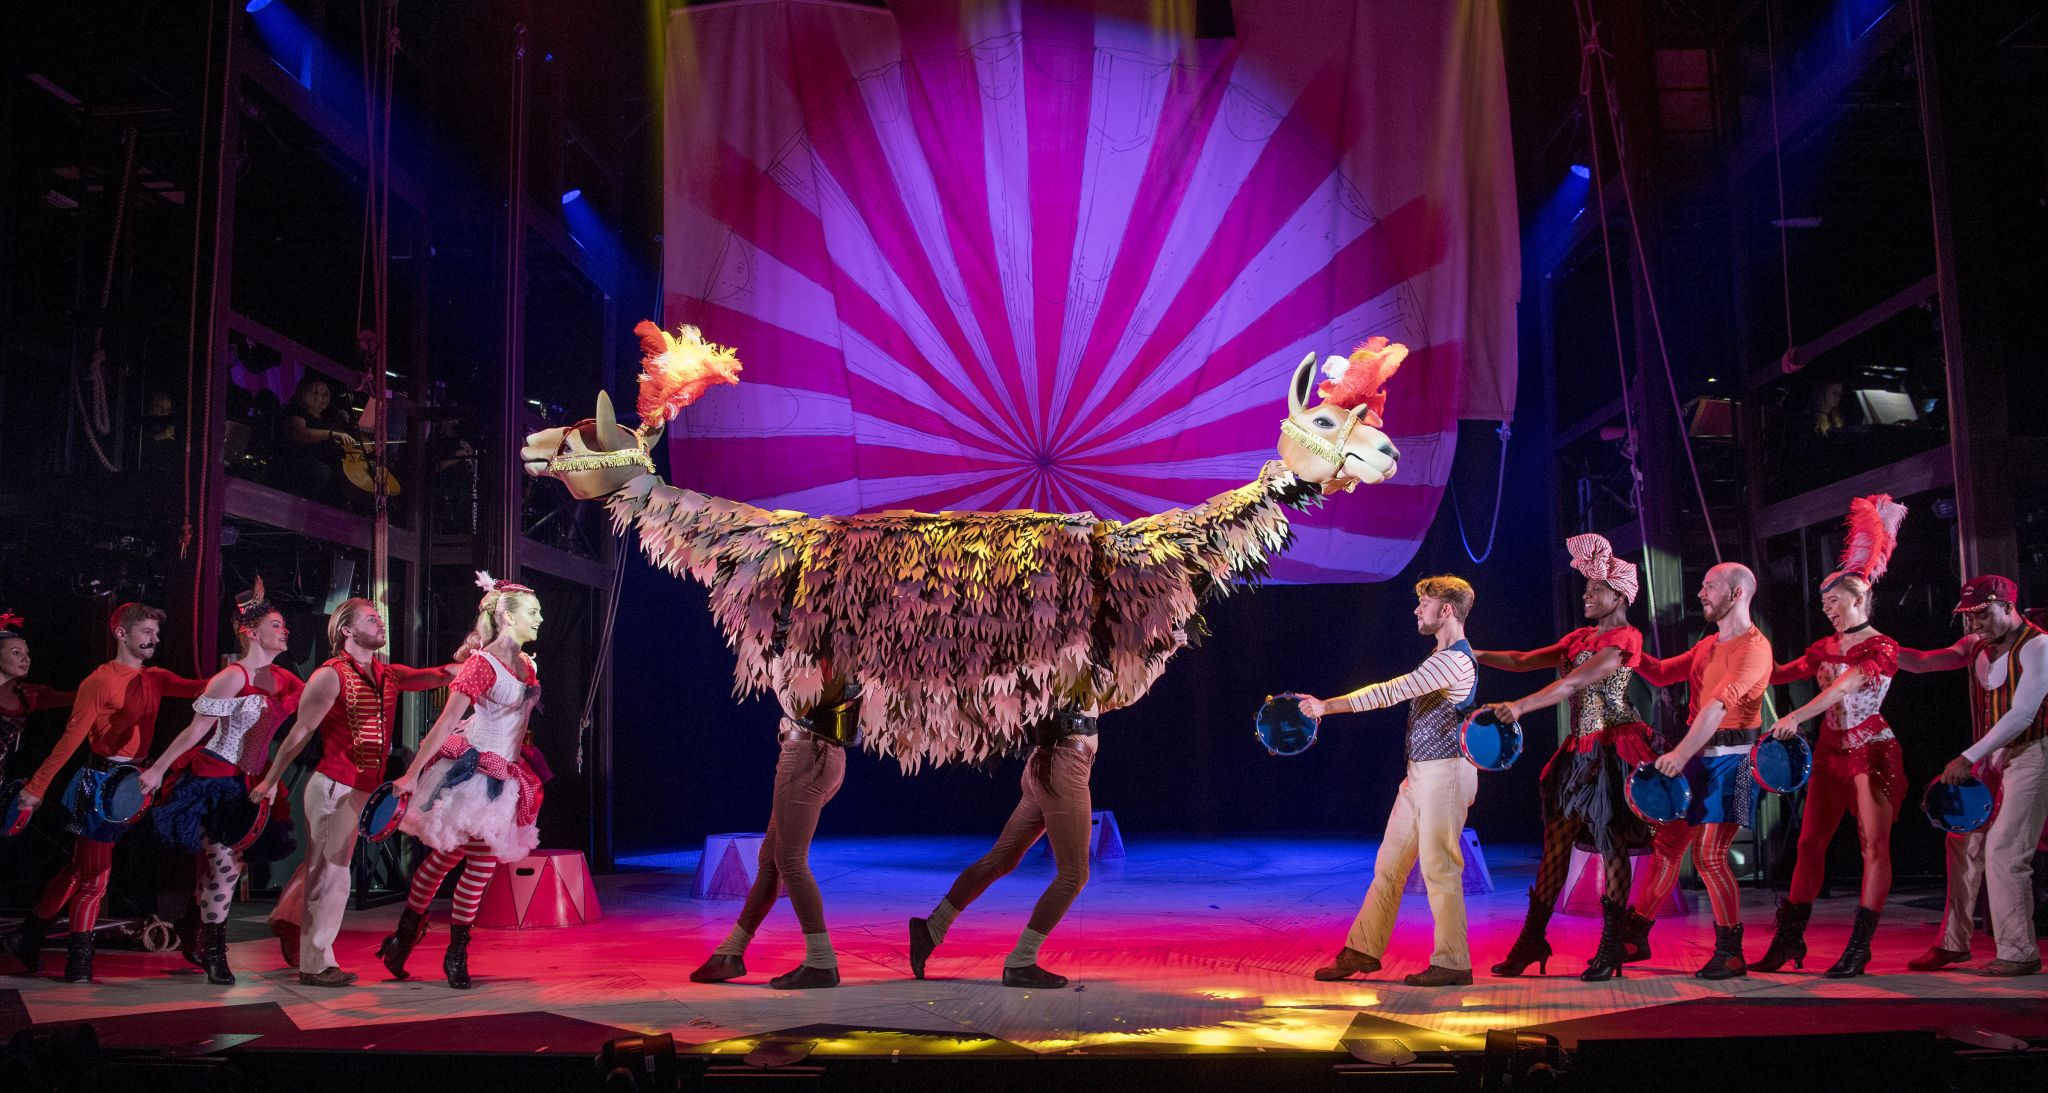 28 The cast of DOCTOR DOLITTLE with the Pushmi-Pullyu. Credit Alastair Muir (2)